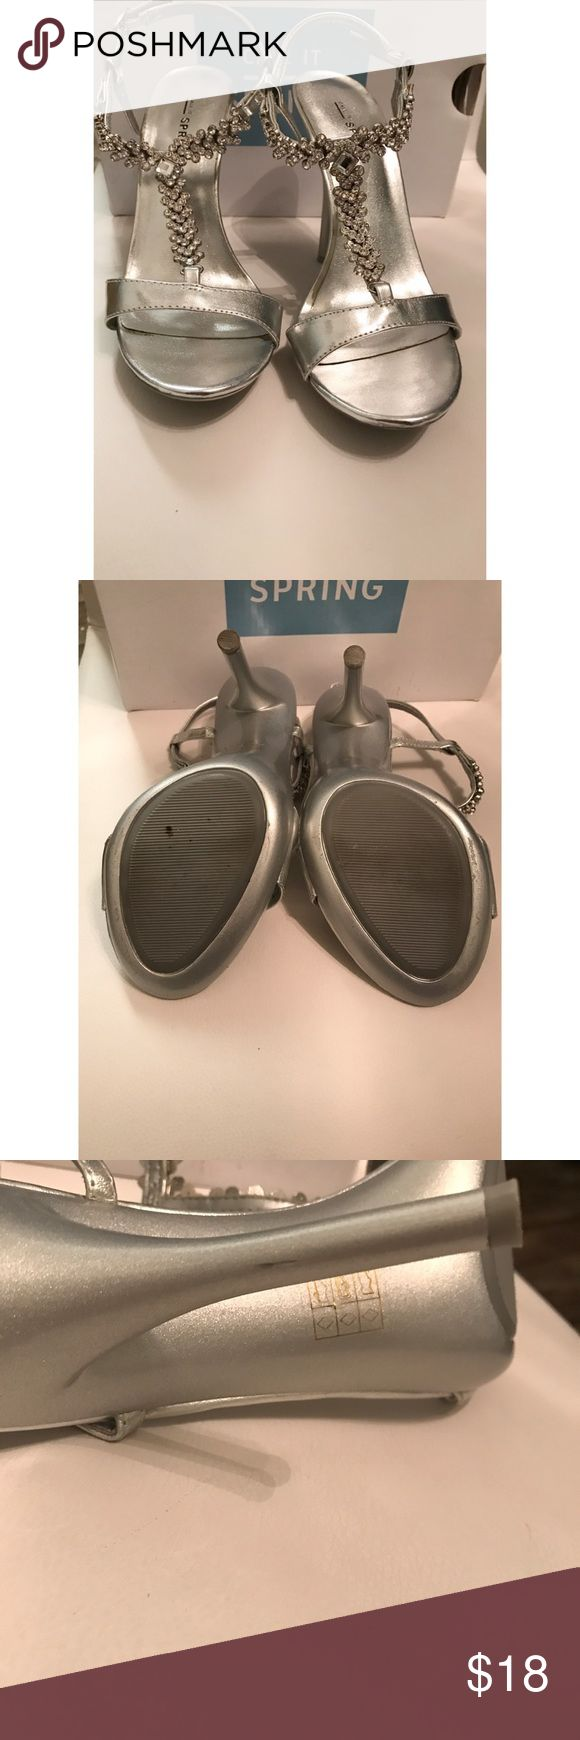 CALL IT SPRING SILVER RHINESTONE HEELS SIZE 7 😍 CALL IT SPRING RHINESTONE SILVER HEELS •SIZE 7 •(THE HEEL HAS A TINY  SCRATCH) OVER ALL GOOD  CONDITION 👠 Call It Spring Shoes Heels